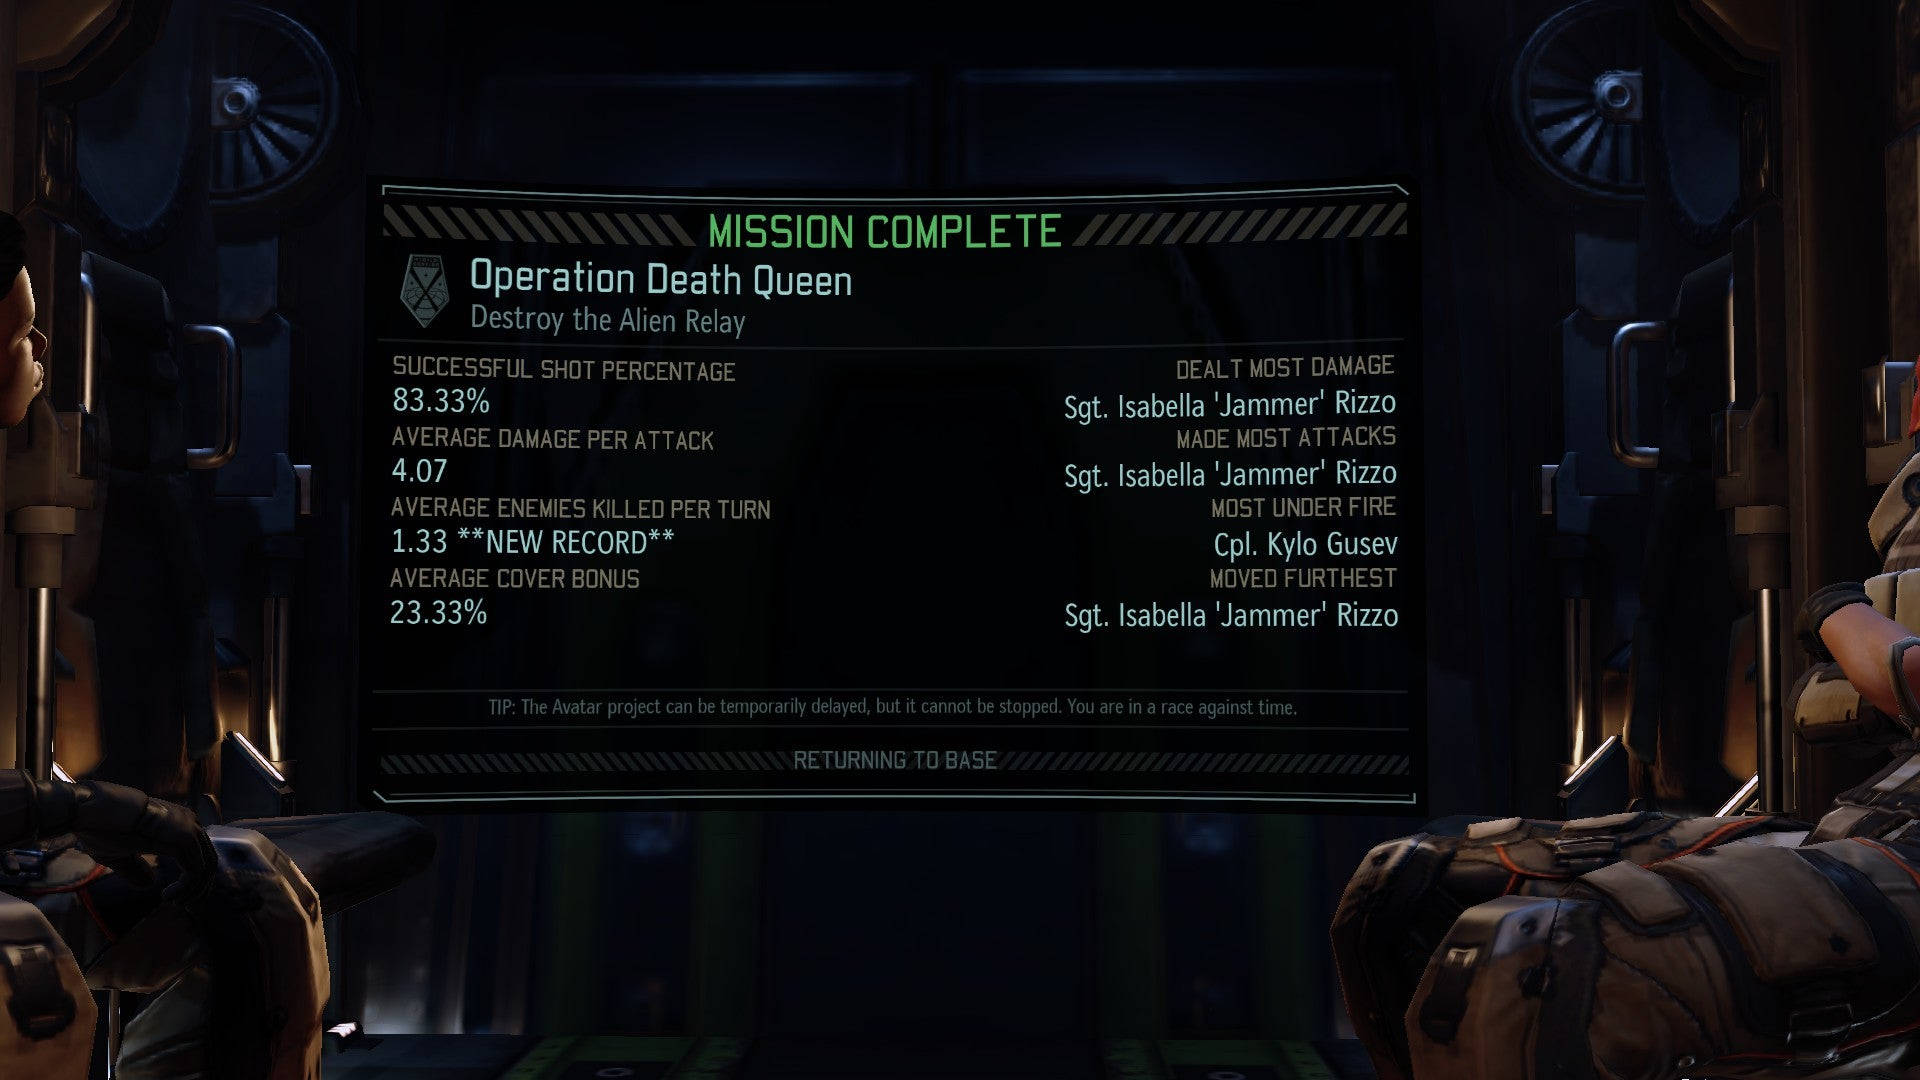 XCOM 2's Random Mission Names Are Really Great